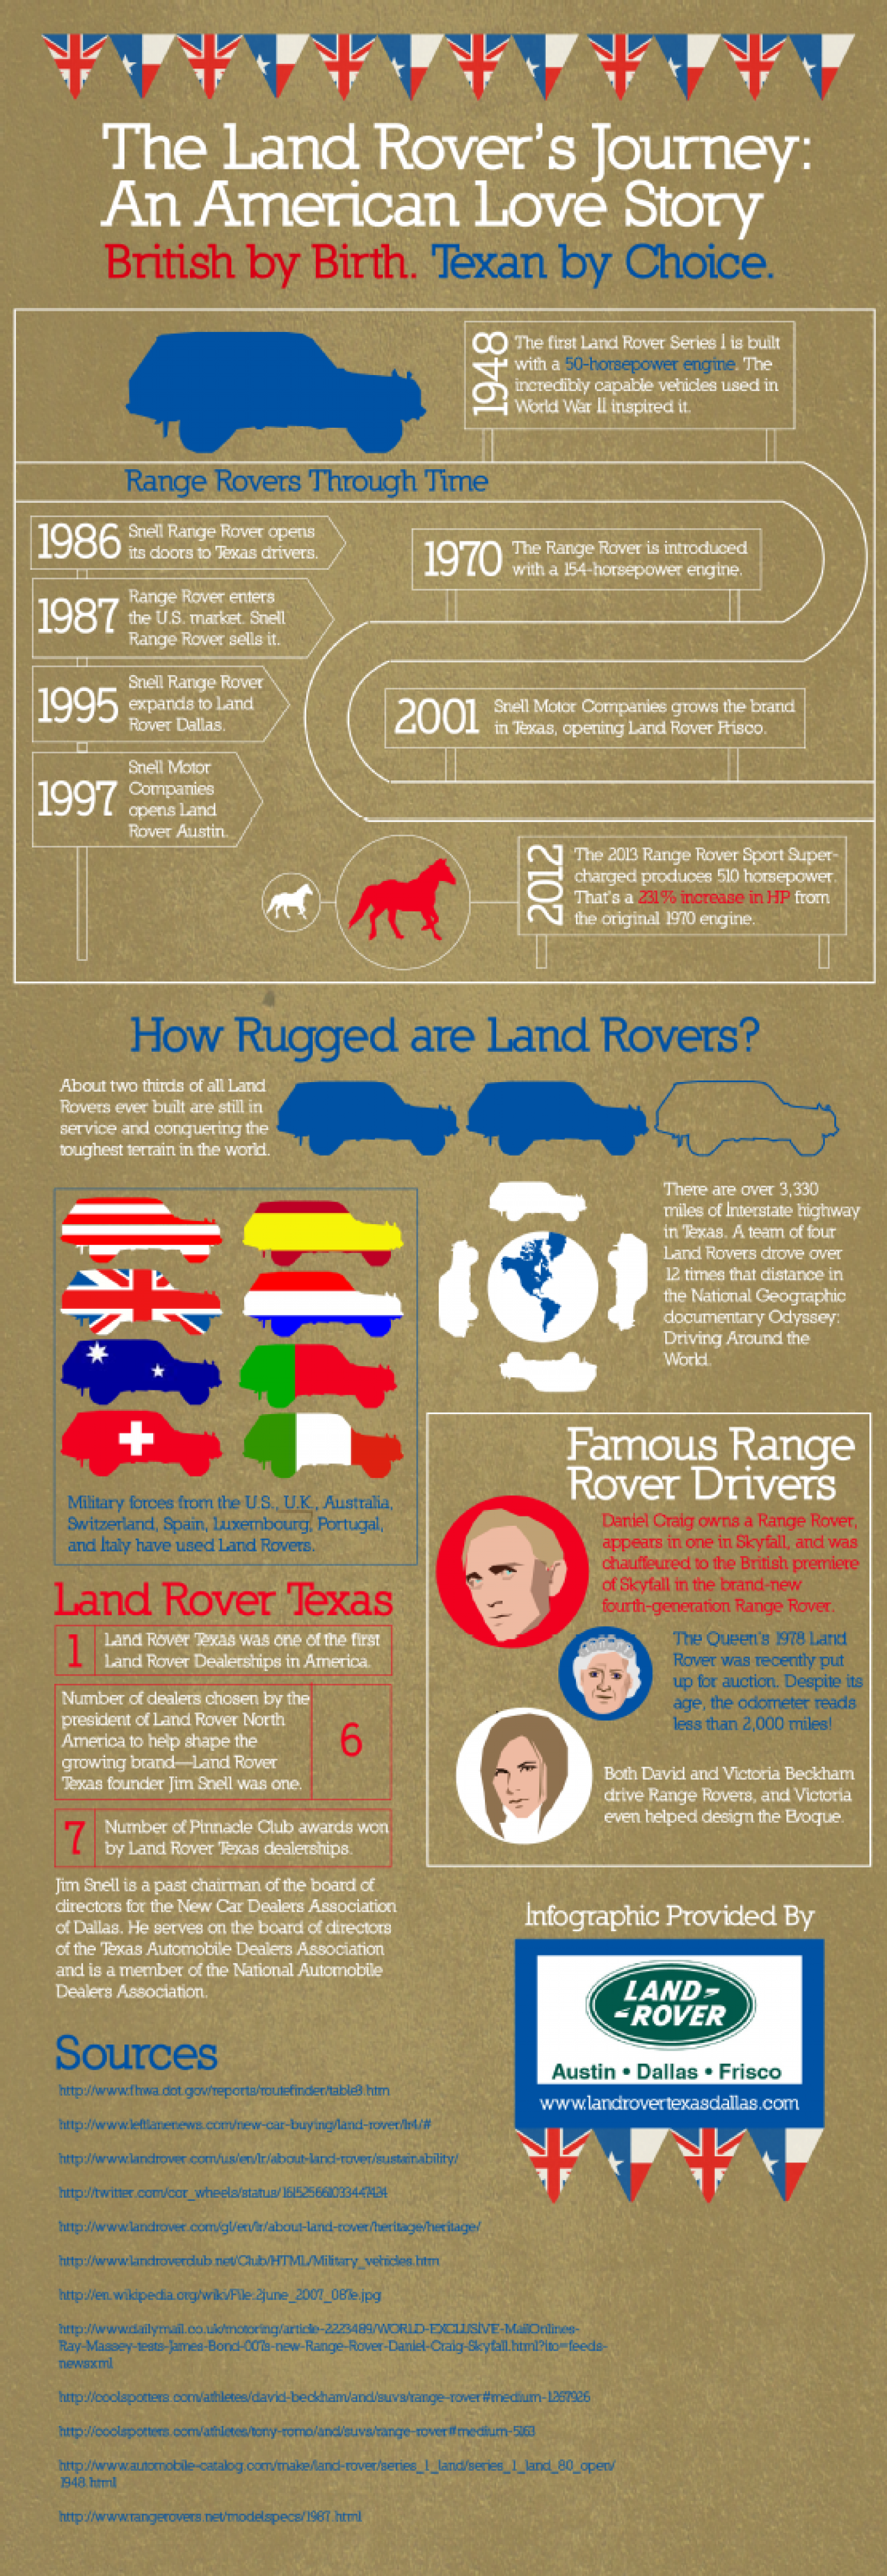 The Land Rover